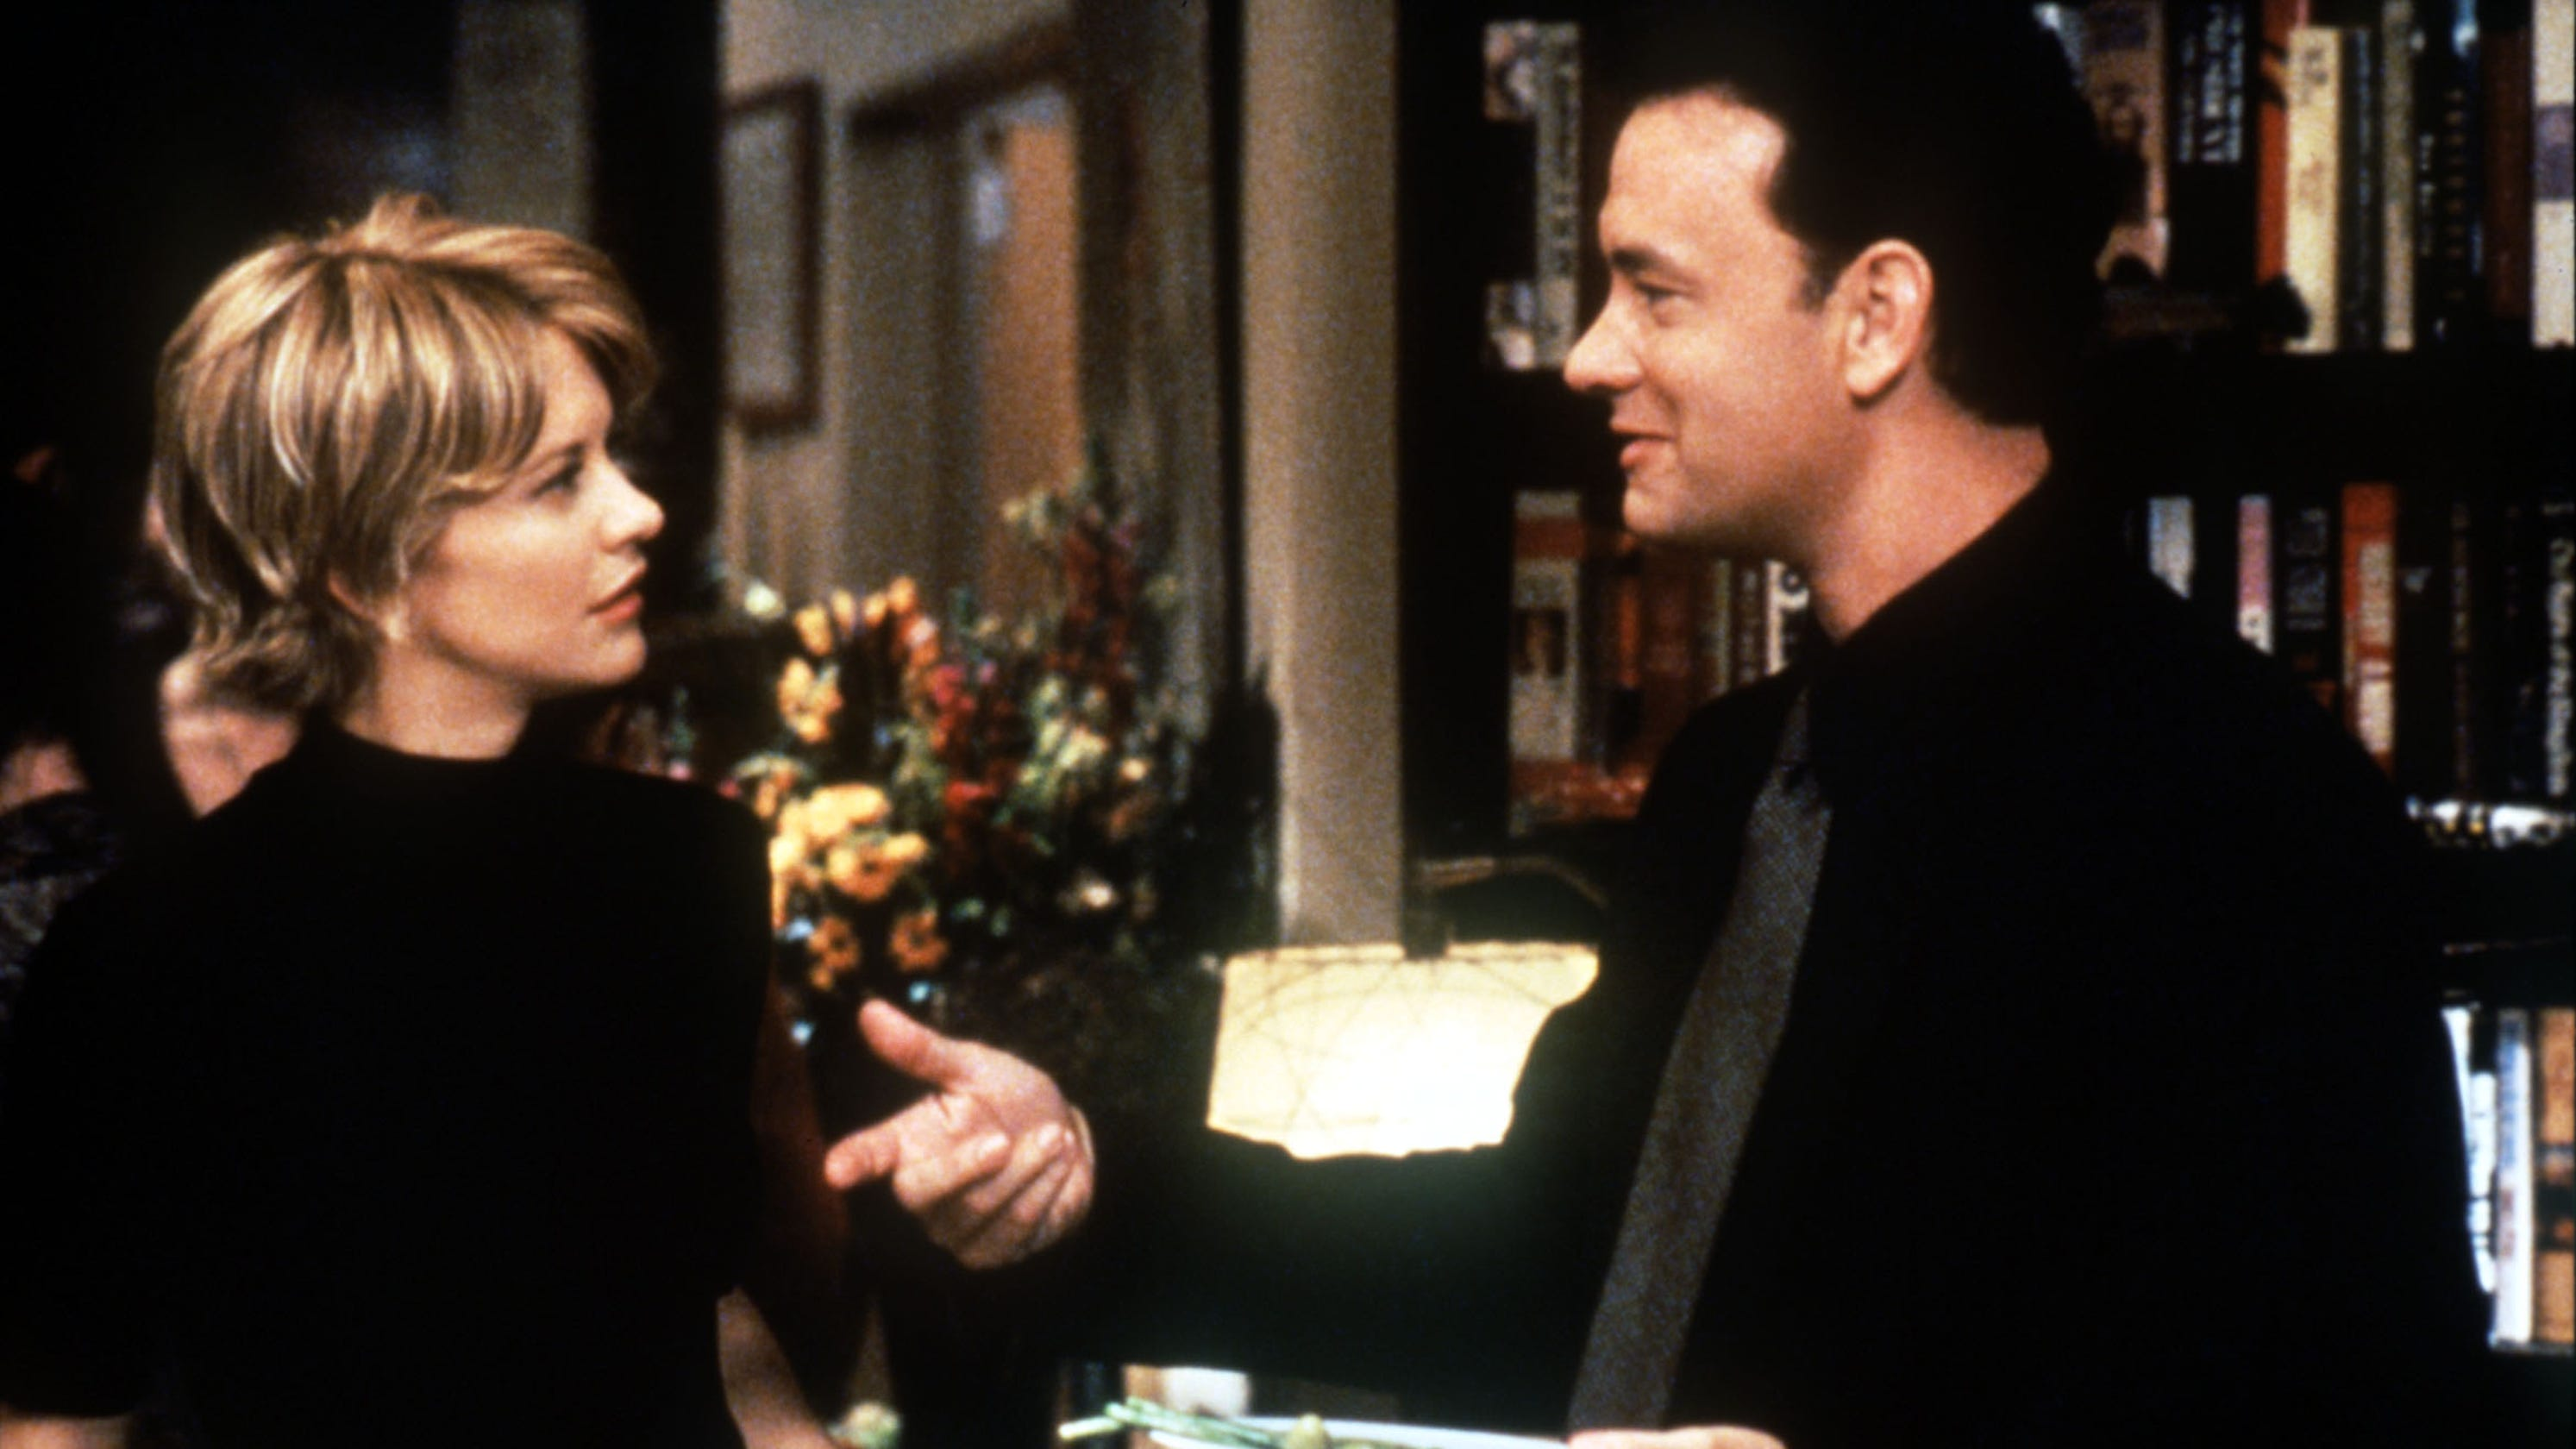 You've Got Mail' turns 20: All the best quotes from the rom-com #coffeeBreath